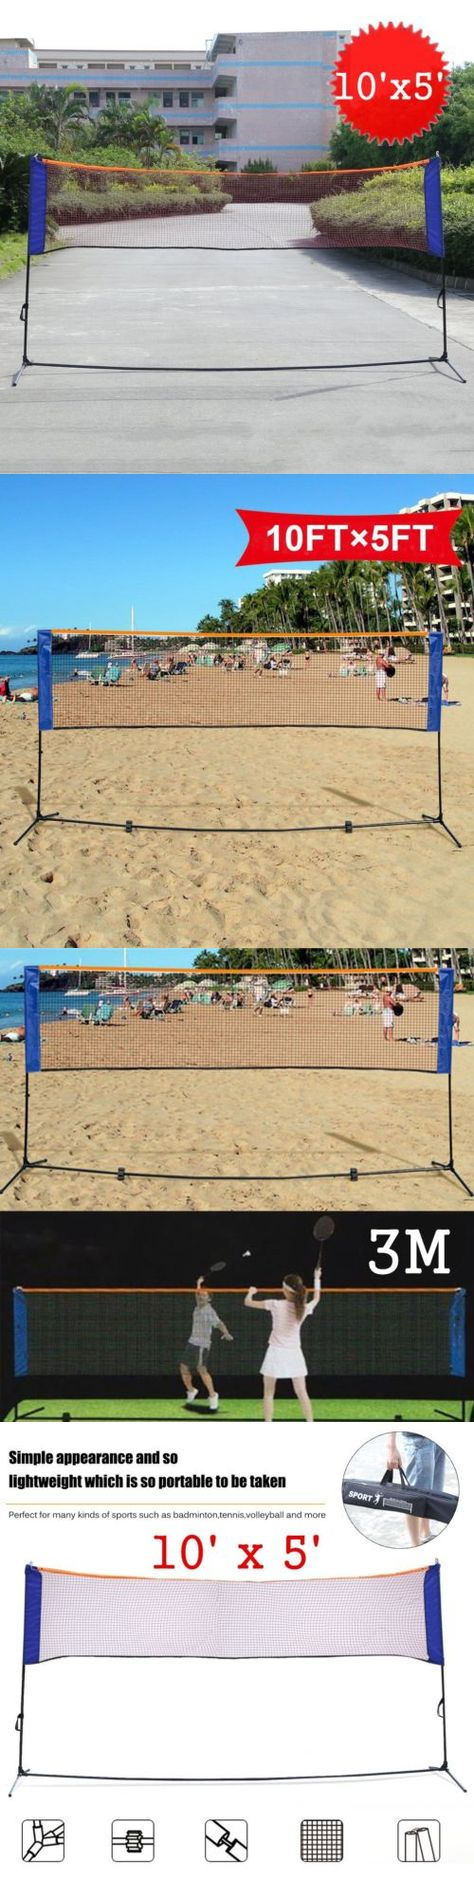 badminton 106460 portable 3 in 1training beach volleyball